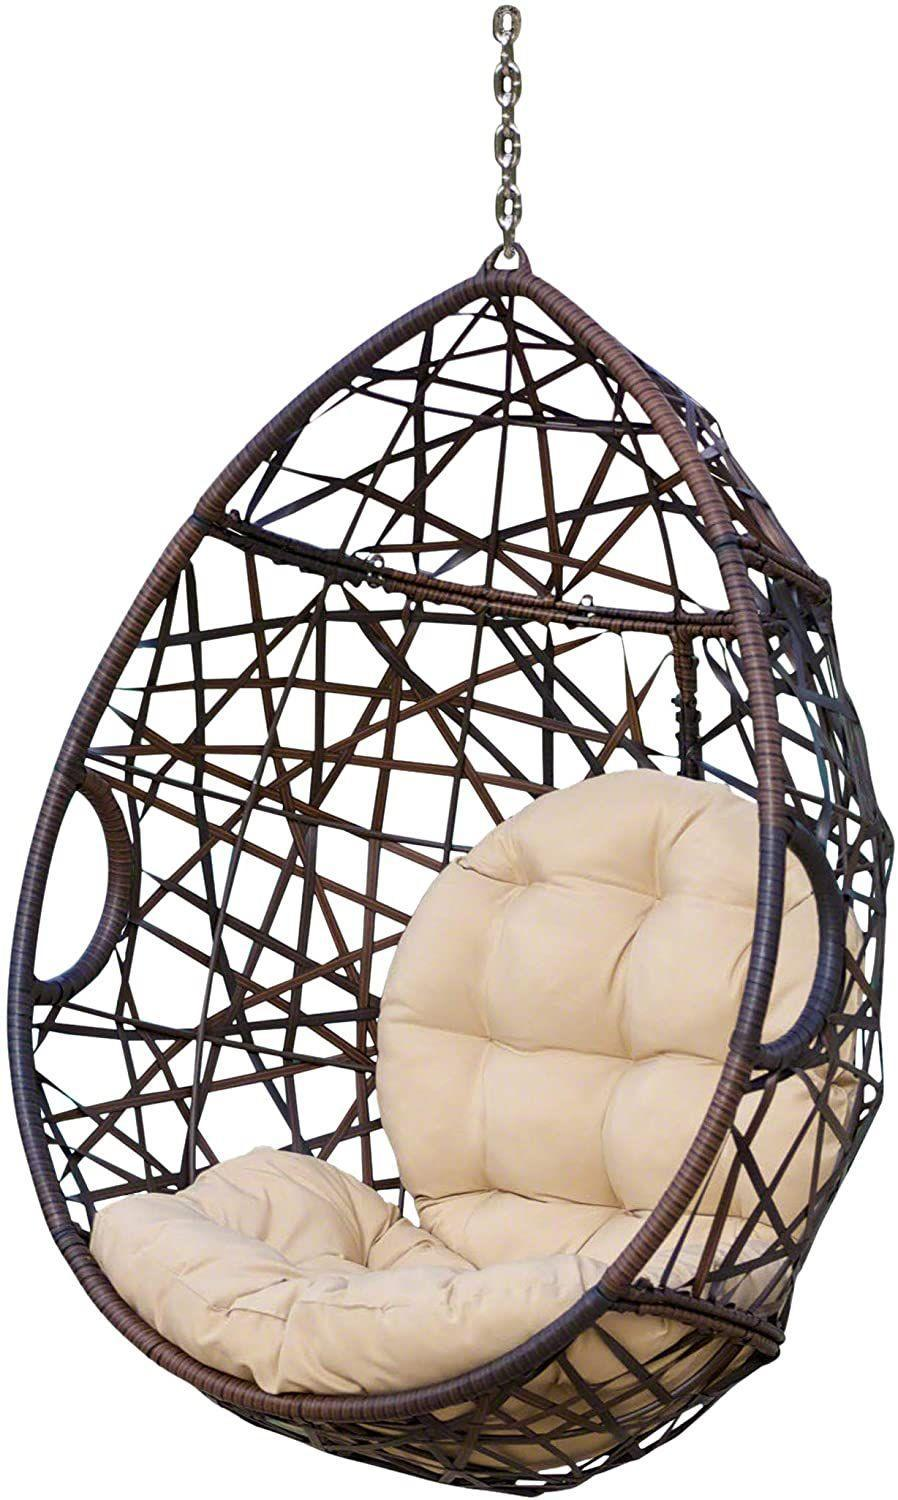 Christopher Knight Home Tear-Drop Hanging Chair